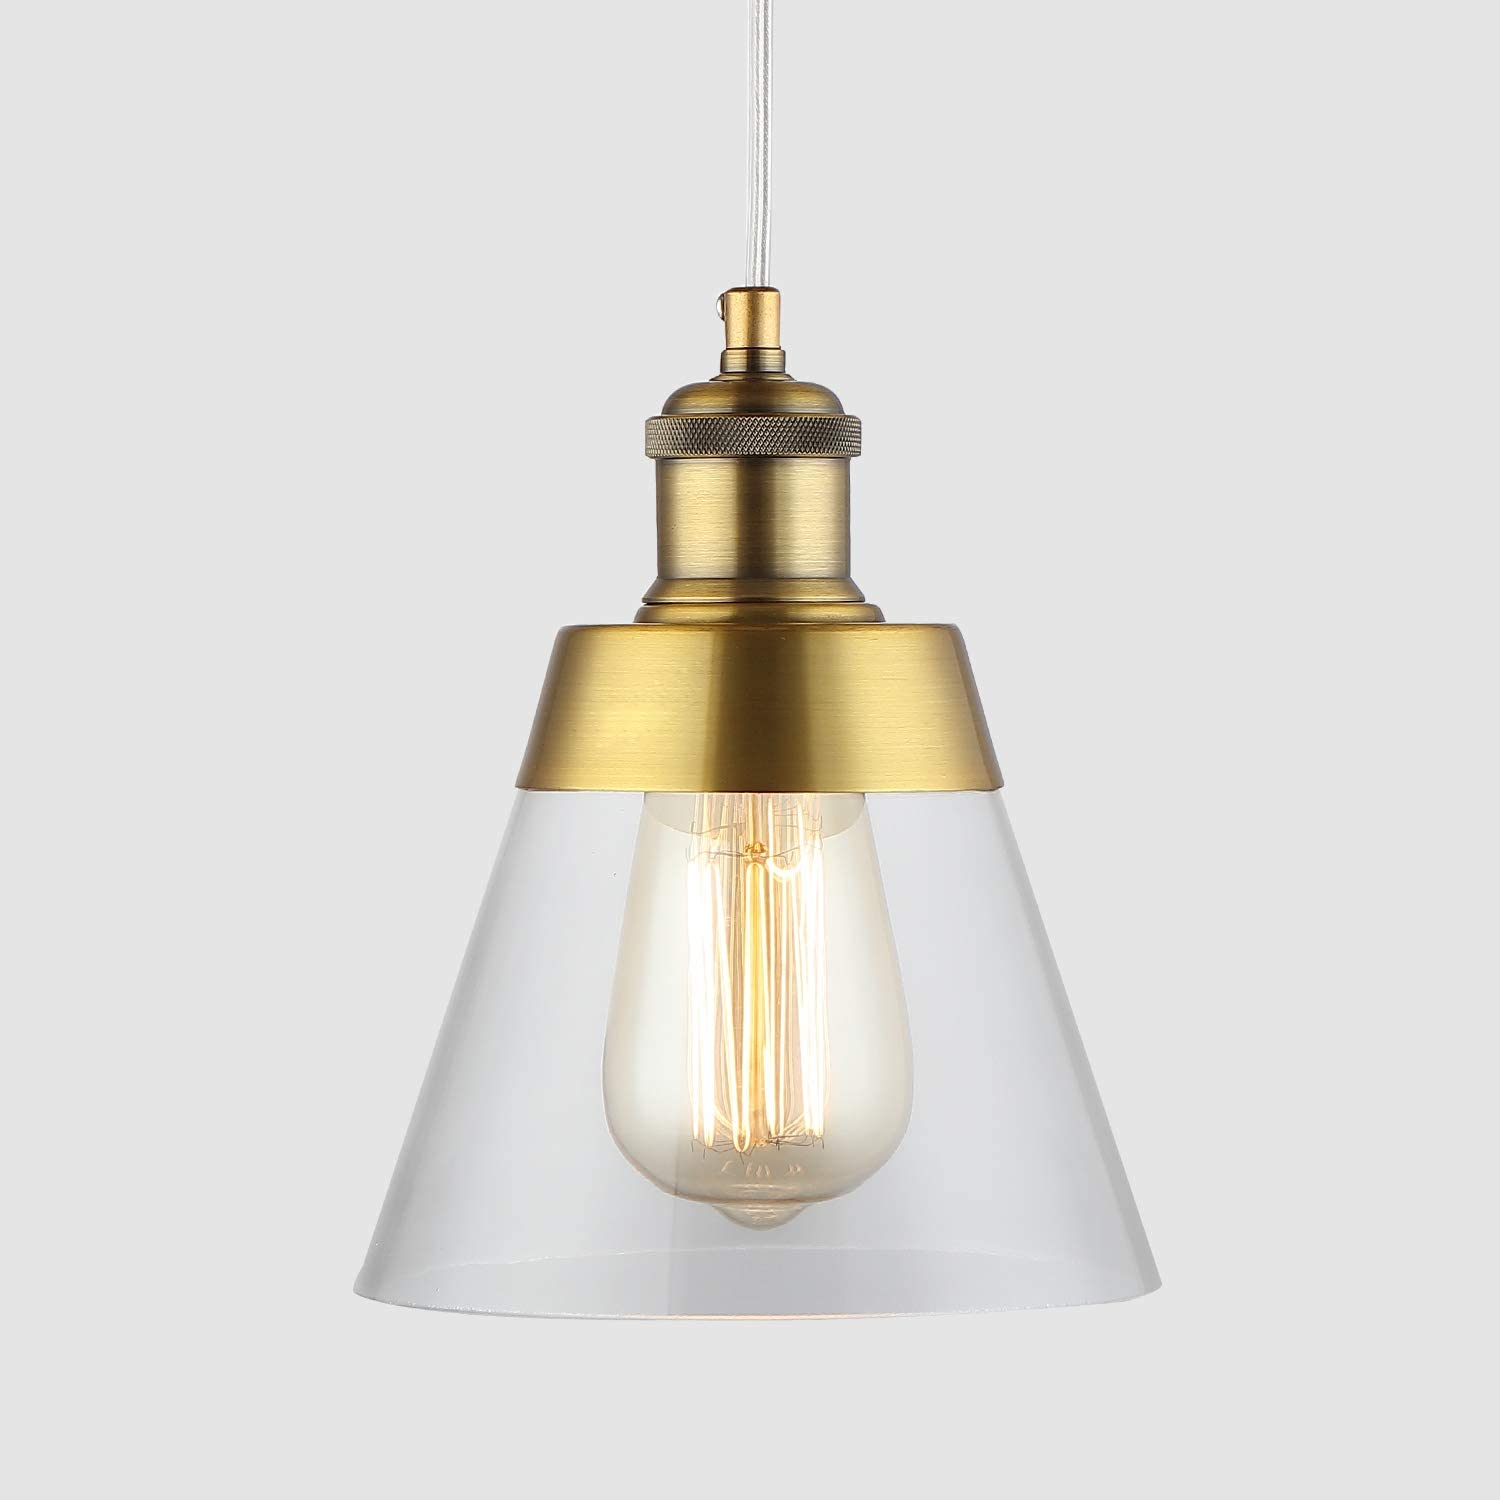 Modern Farmhouse Glass Pendant Light with Handblown Clear Glass Shade, One-Light Adjustable Industrial Vintage Mini Pendant Lighting Fixture for Kitchen Island Cafe Bar, Antique Brass